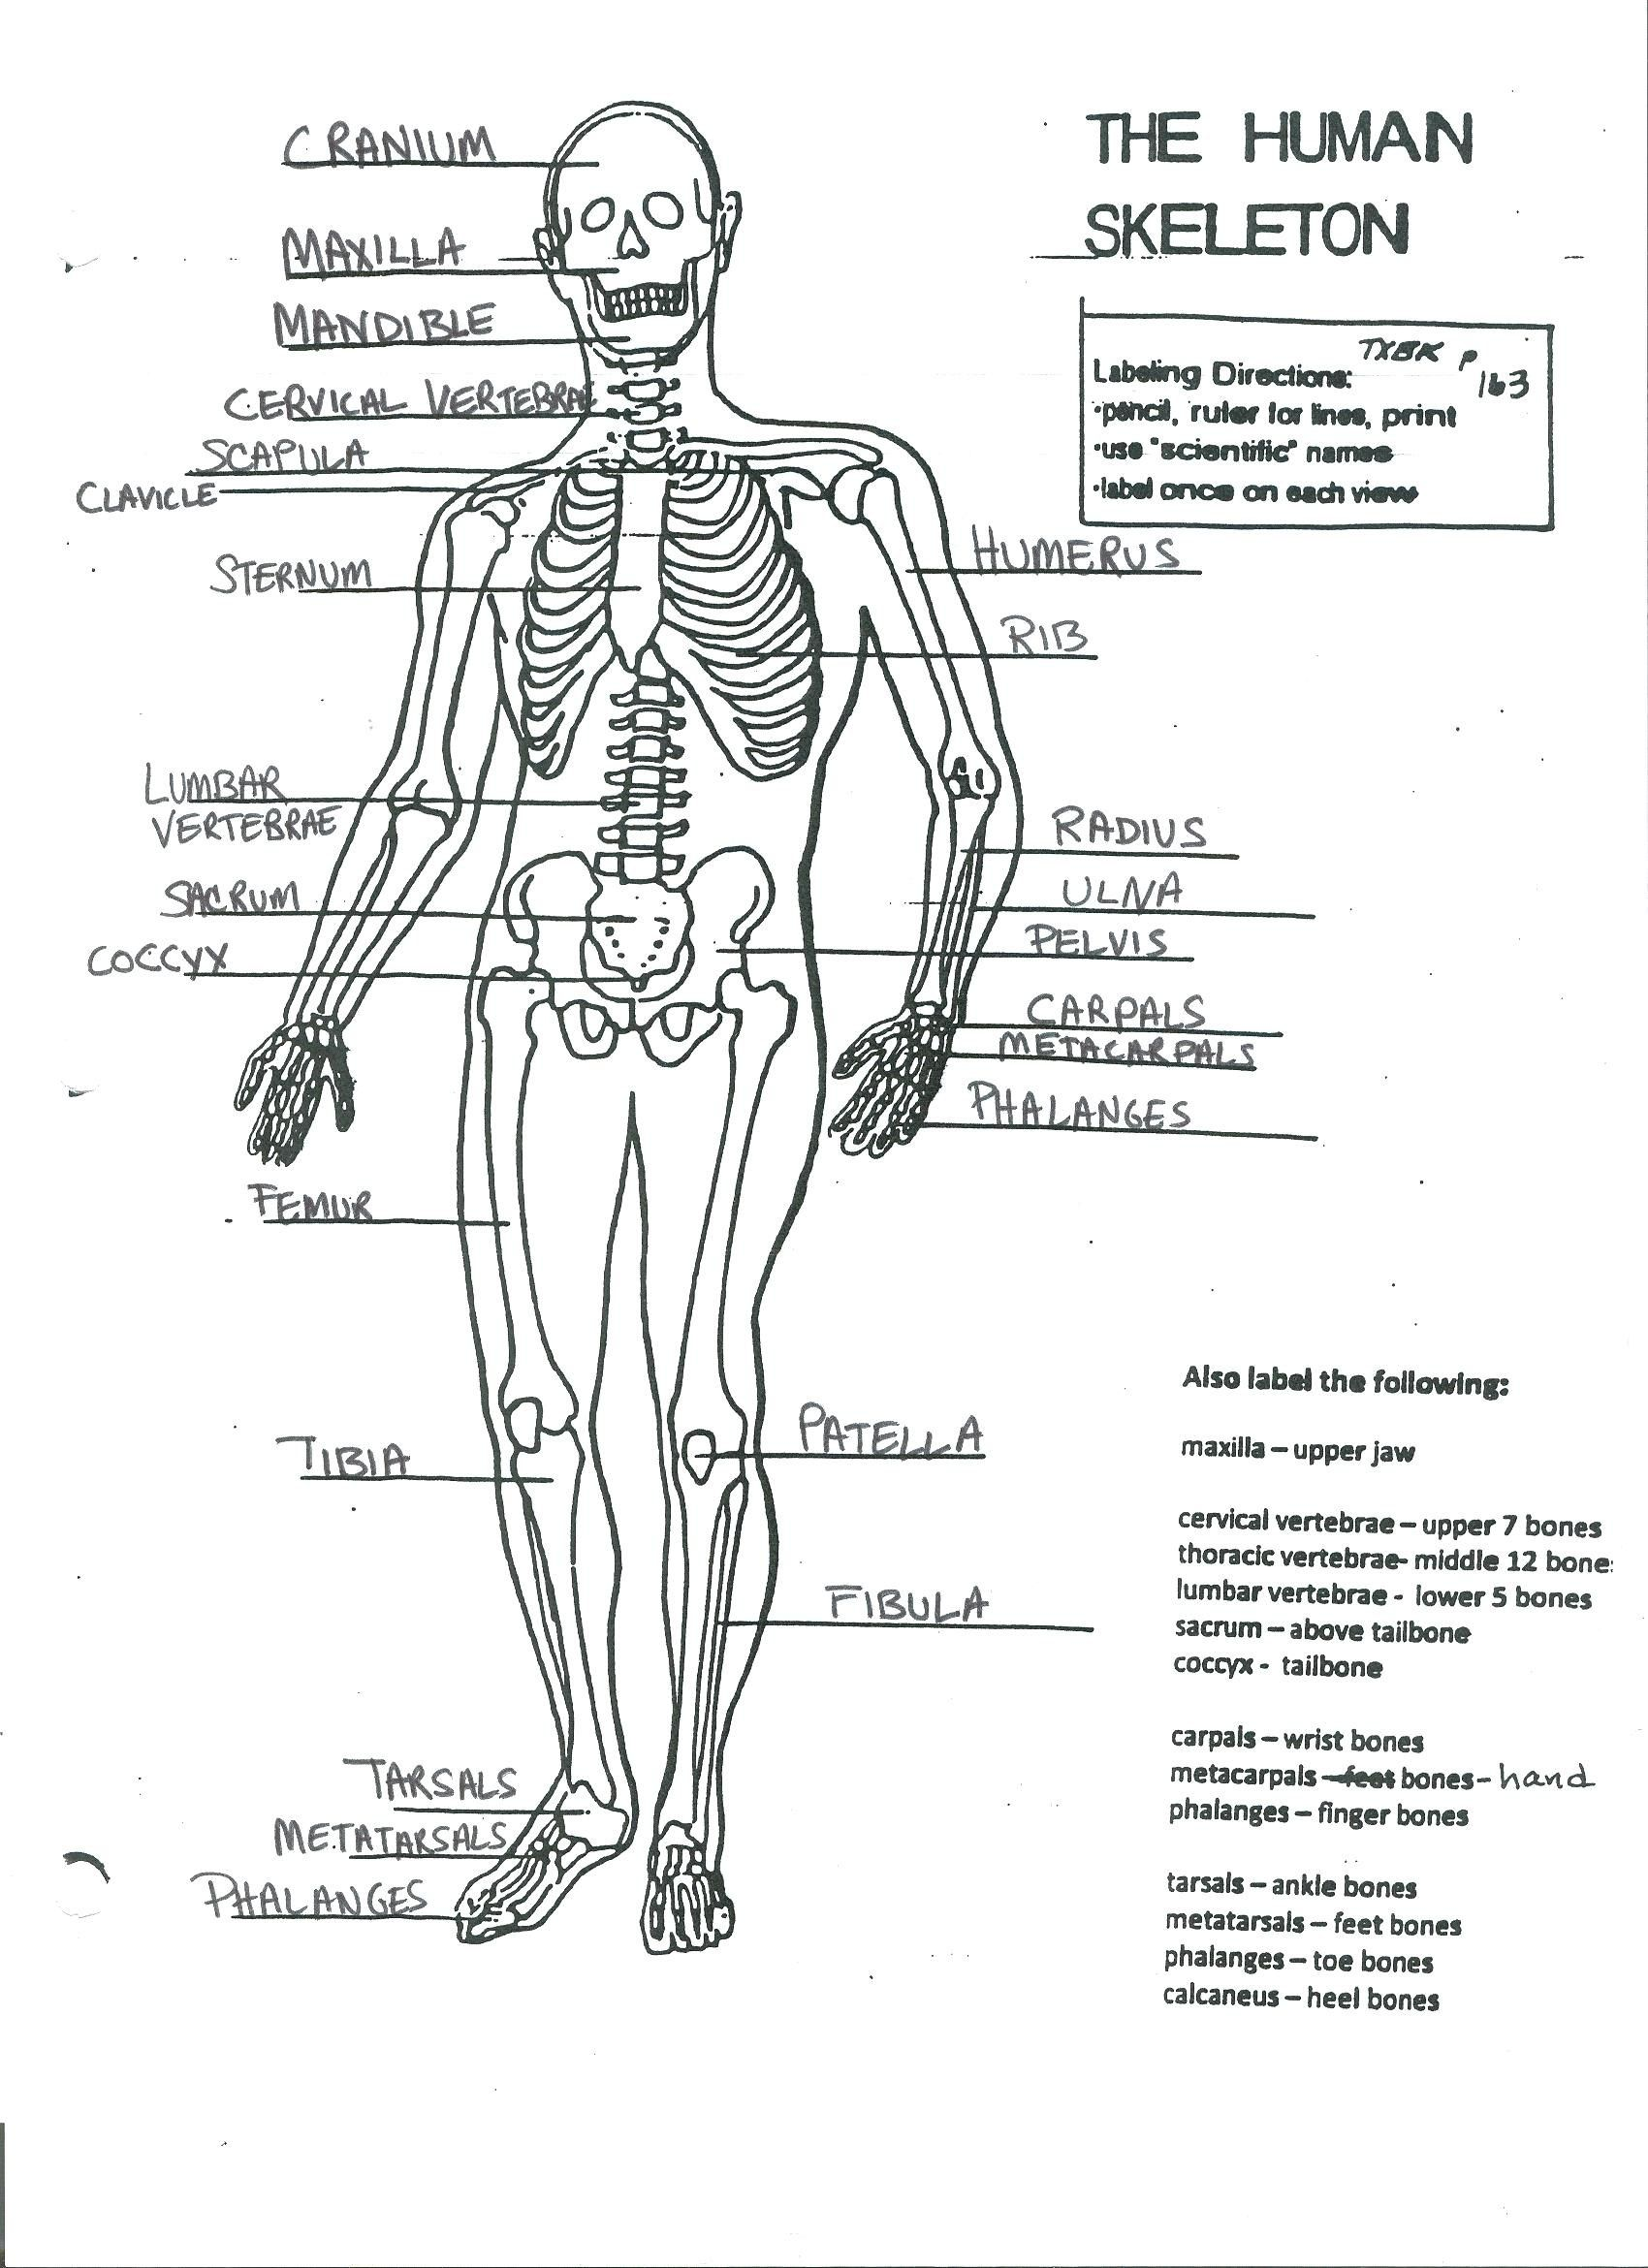 human skeleton diagram without labels human skeleton diagram without labels diagram human skeleton diagram without [ 1700 x 2340 Pixel ]